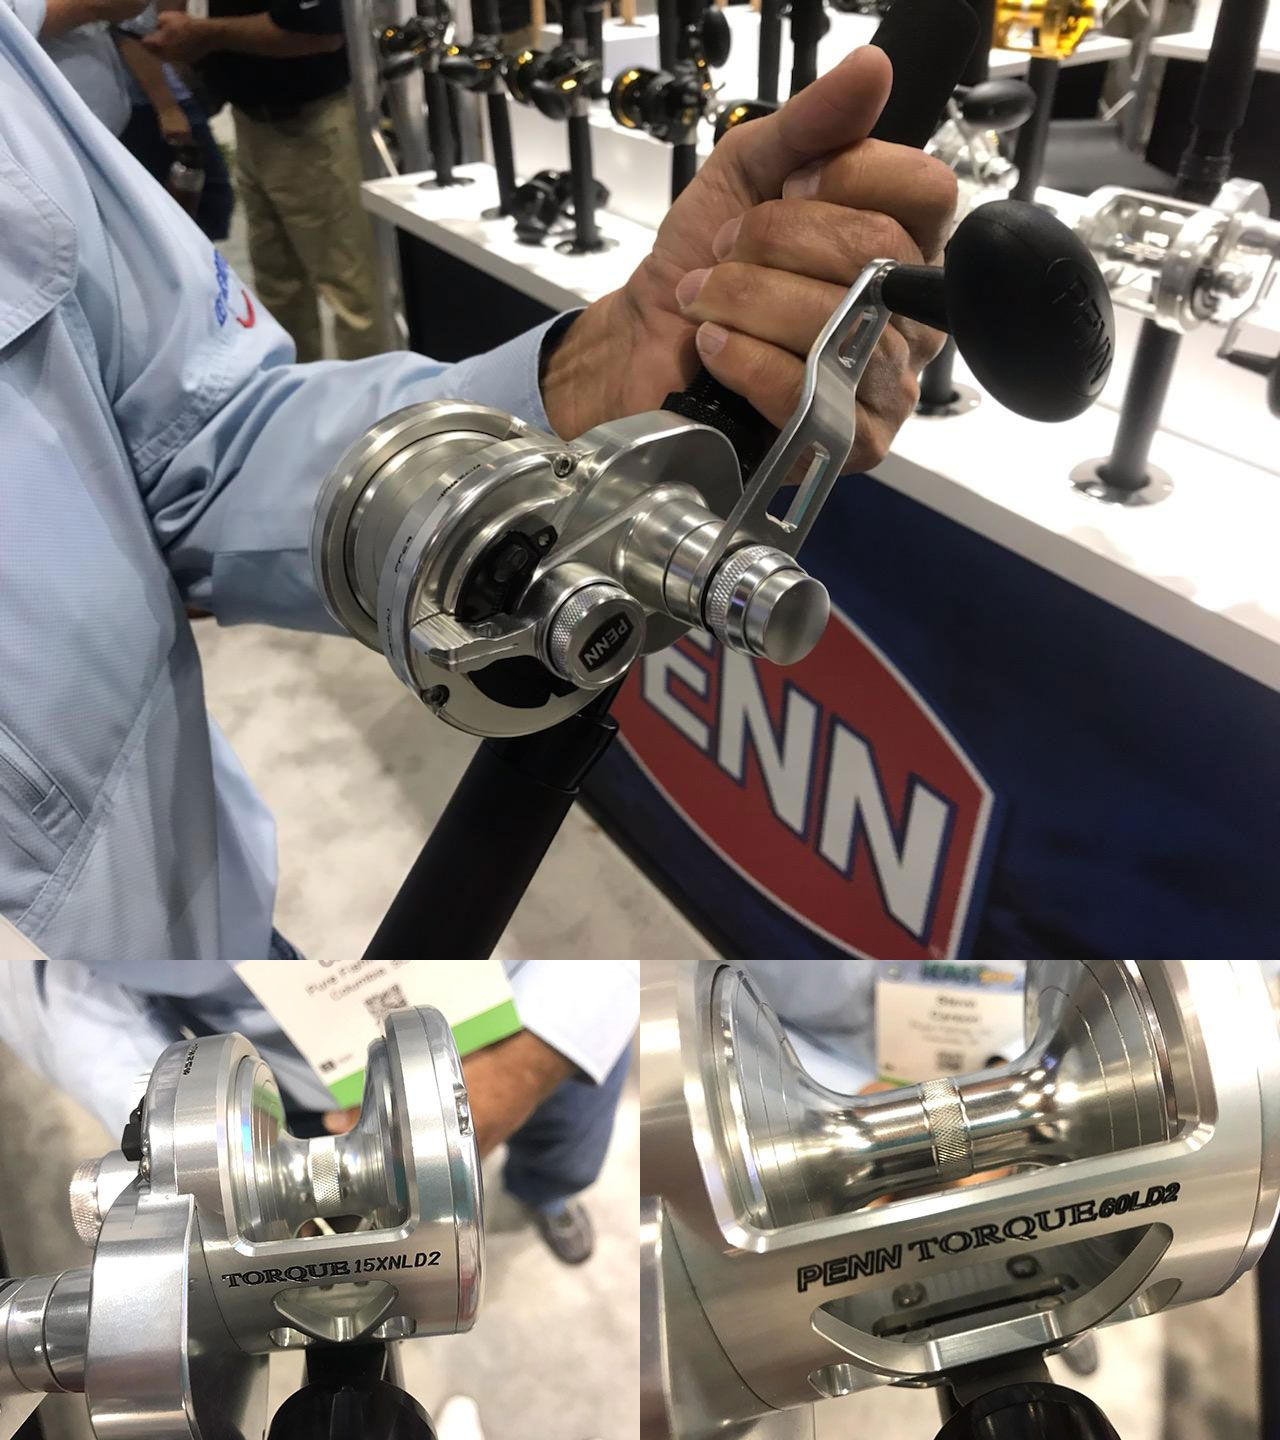 Penn introduced a silver version of its popular Torque LD2 reel series, along with 2 new sizes, all featuring lever drag and 2-speed retrieve to handle everything from big bottom dwellers to tuna, wahoo and billfish.